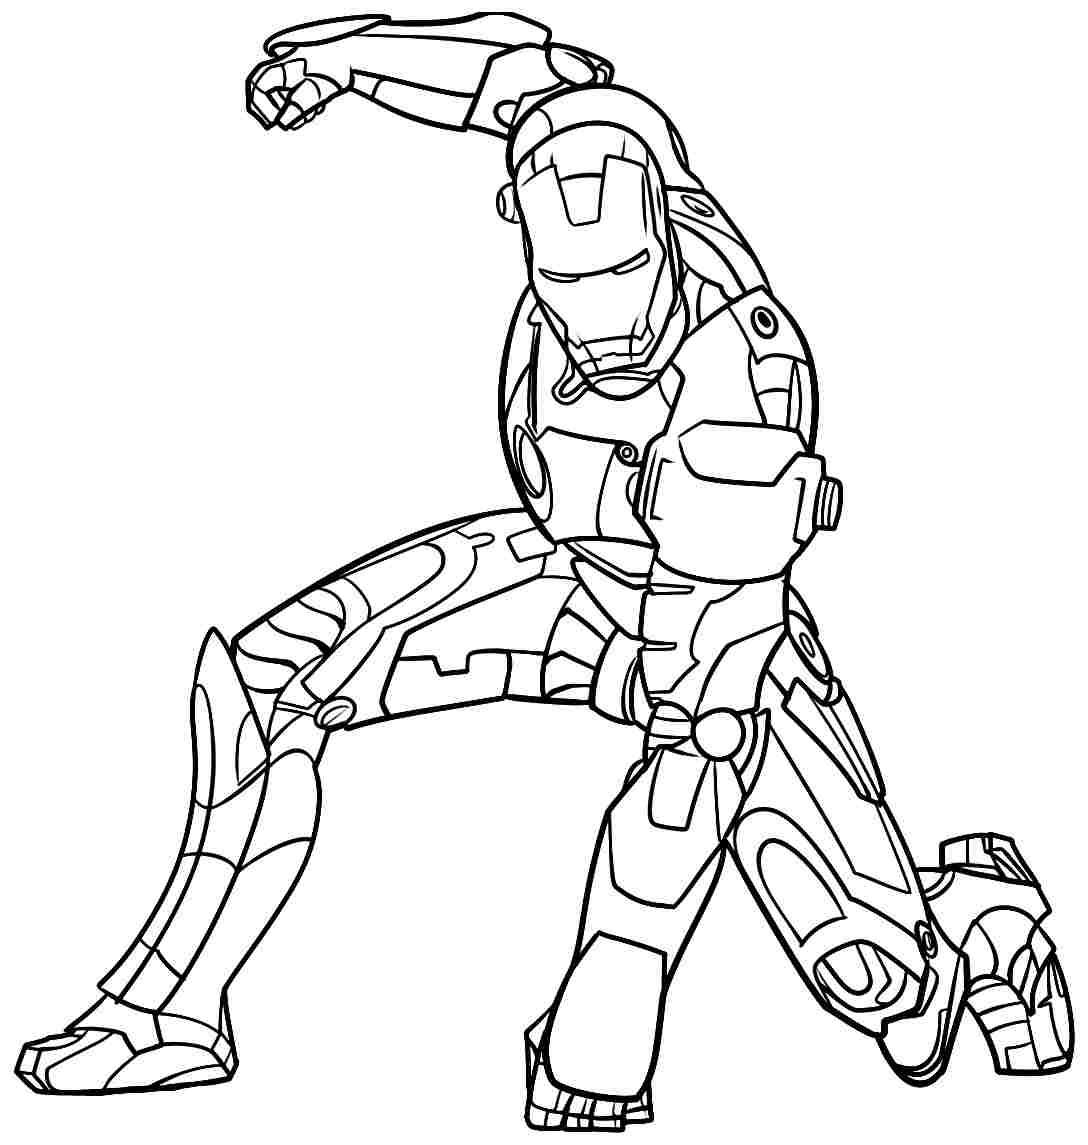 Iron Man (Superheroes) - Printable coloring pages